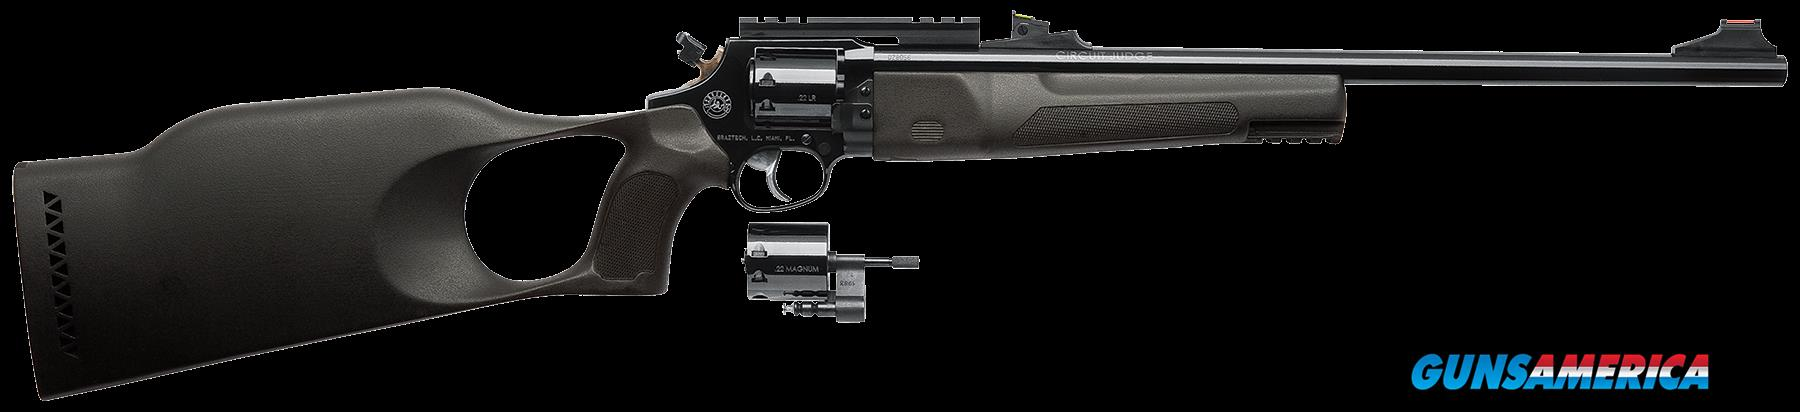 "Rossi SJ22LR22M Circuit Judge Single/Double 22 Long Rifle/22 Winchester Magnum 18.5"" 9 Synthetic  Guns > Pistols > Rossi Revolvers"